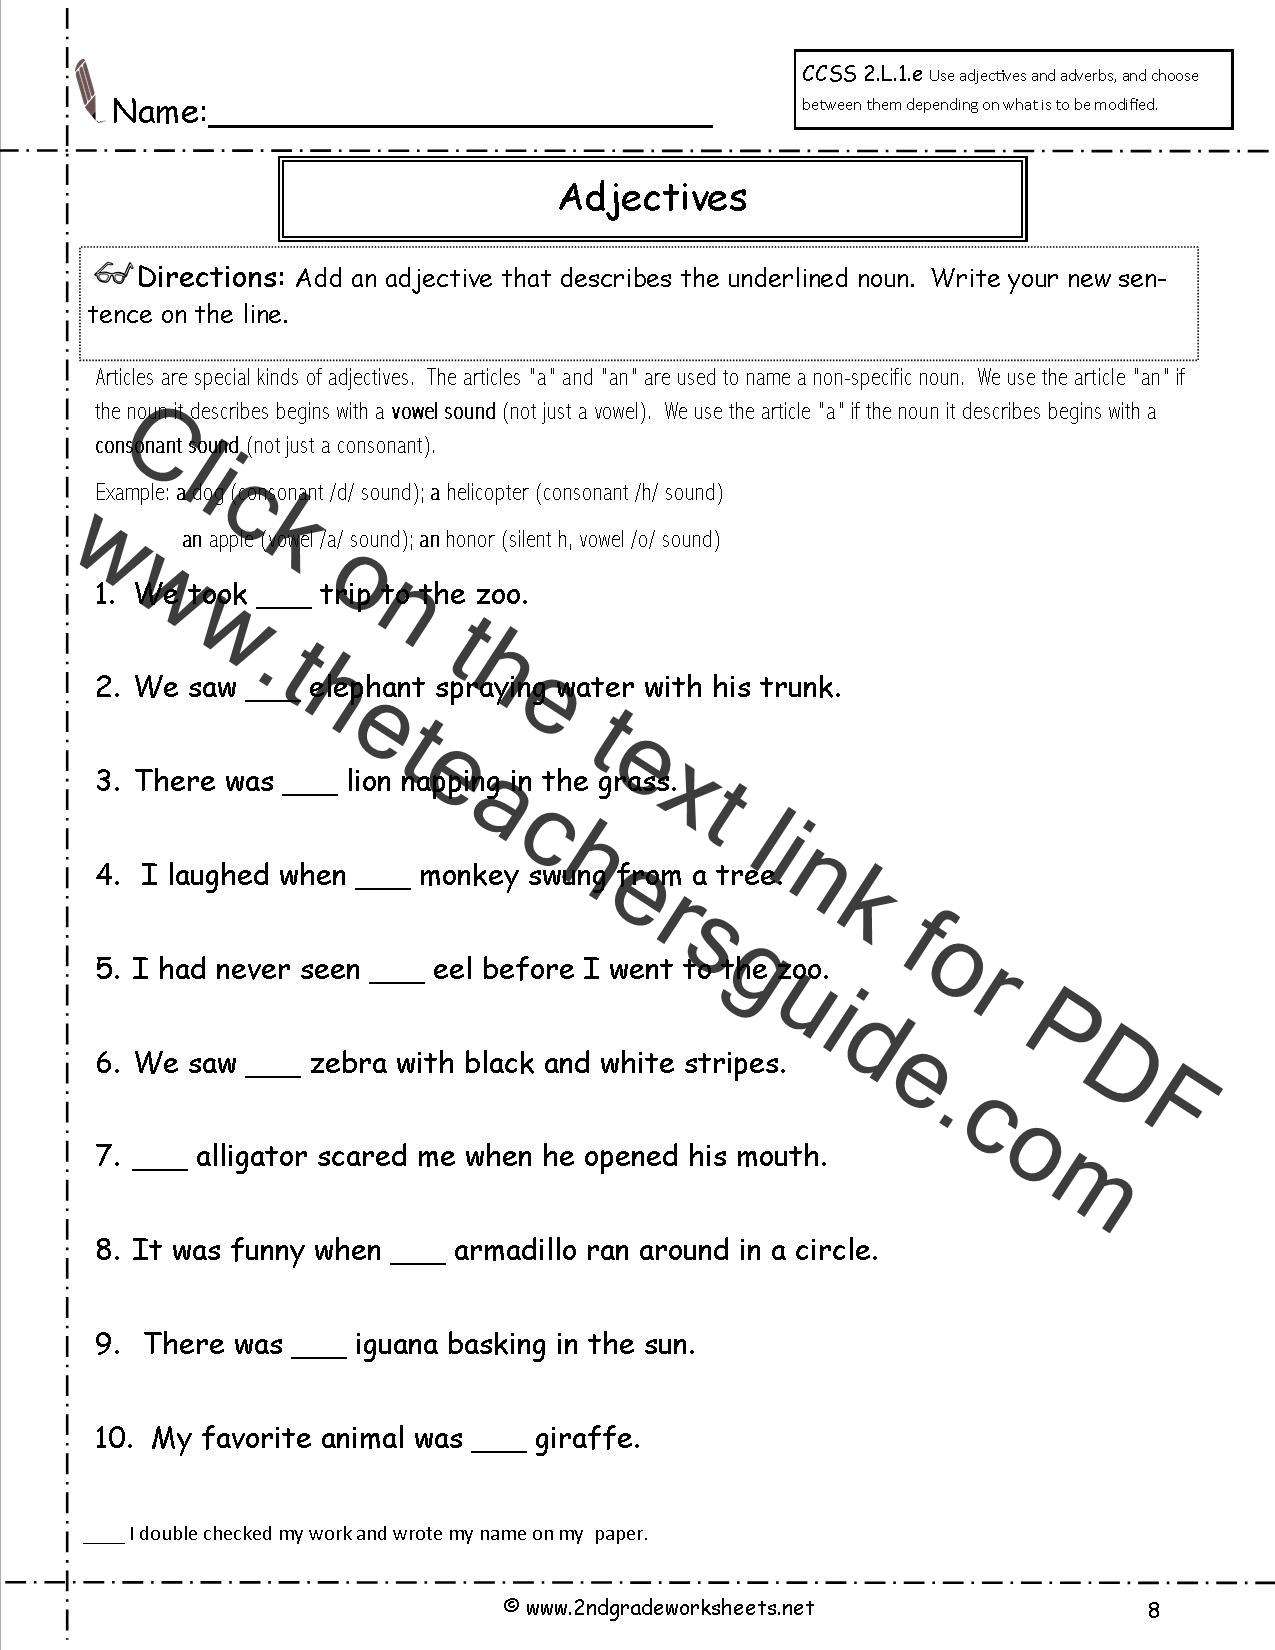 Worksheet Grade 2 English Grammar Worksheets free languagegrammar worksheets and printouts adjectives worksheets